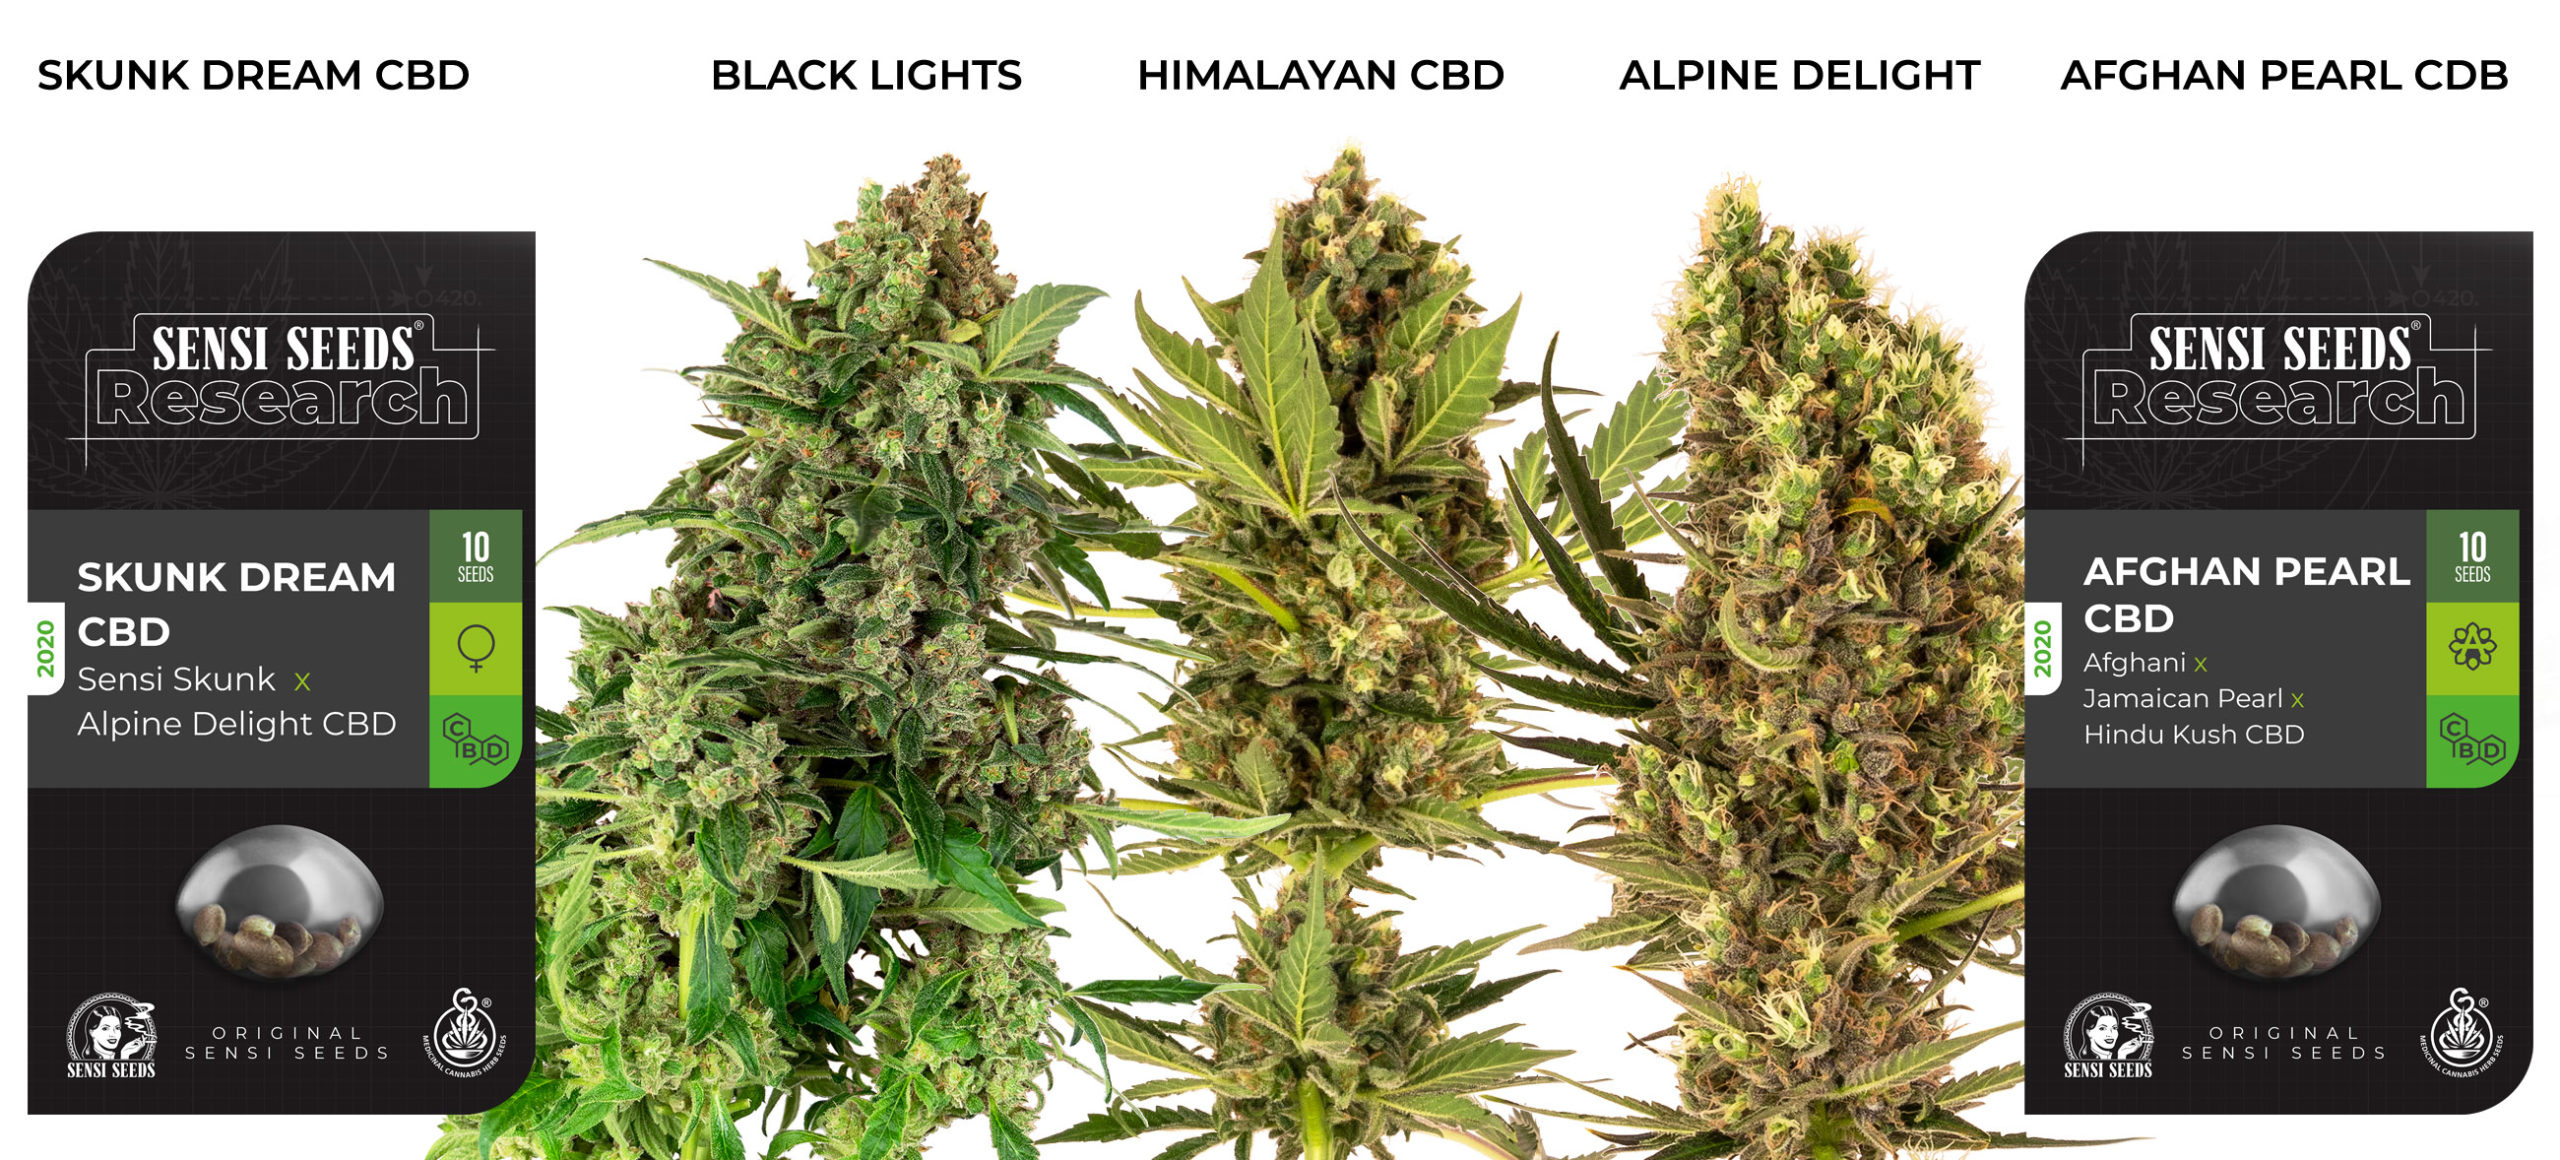 2 confezioni di semi di cannabis (Skunk Dream e Afghan Pearl) + 3 bud (Black Lights, Himalayan e Alpine Delight).